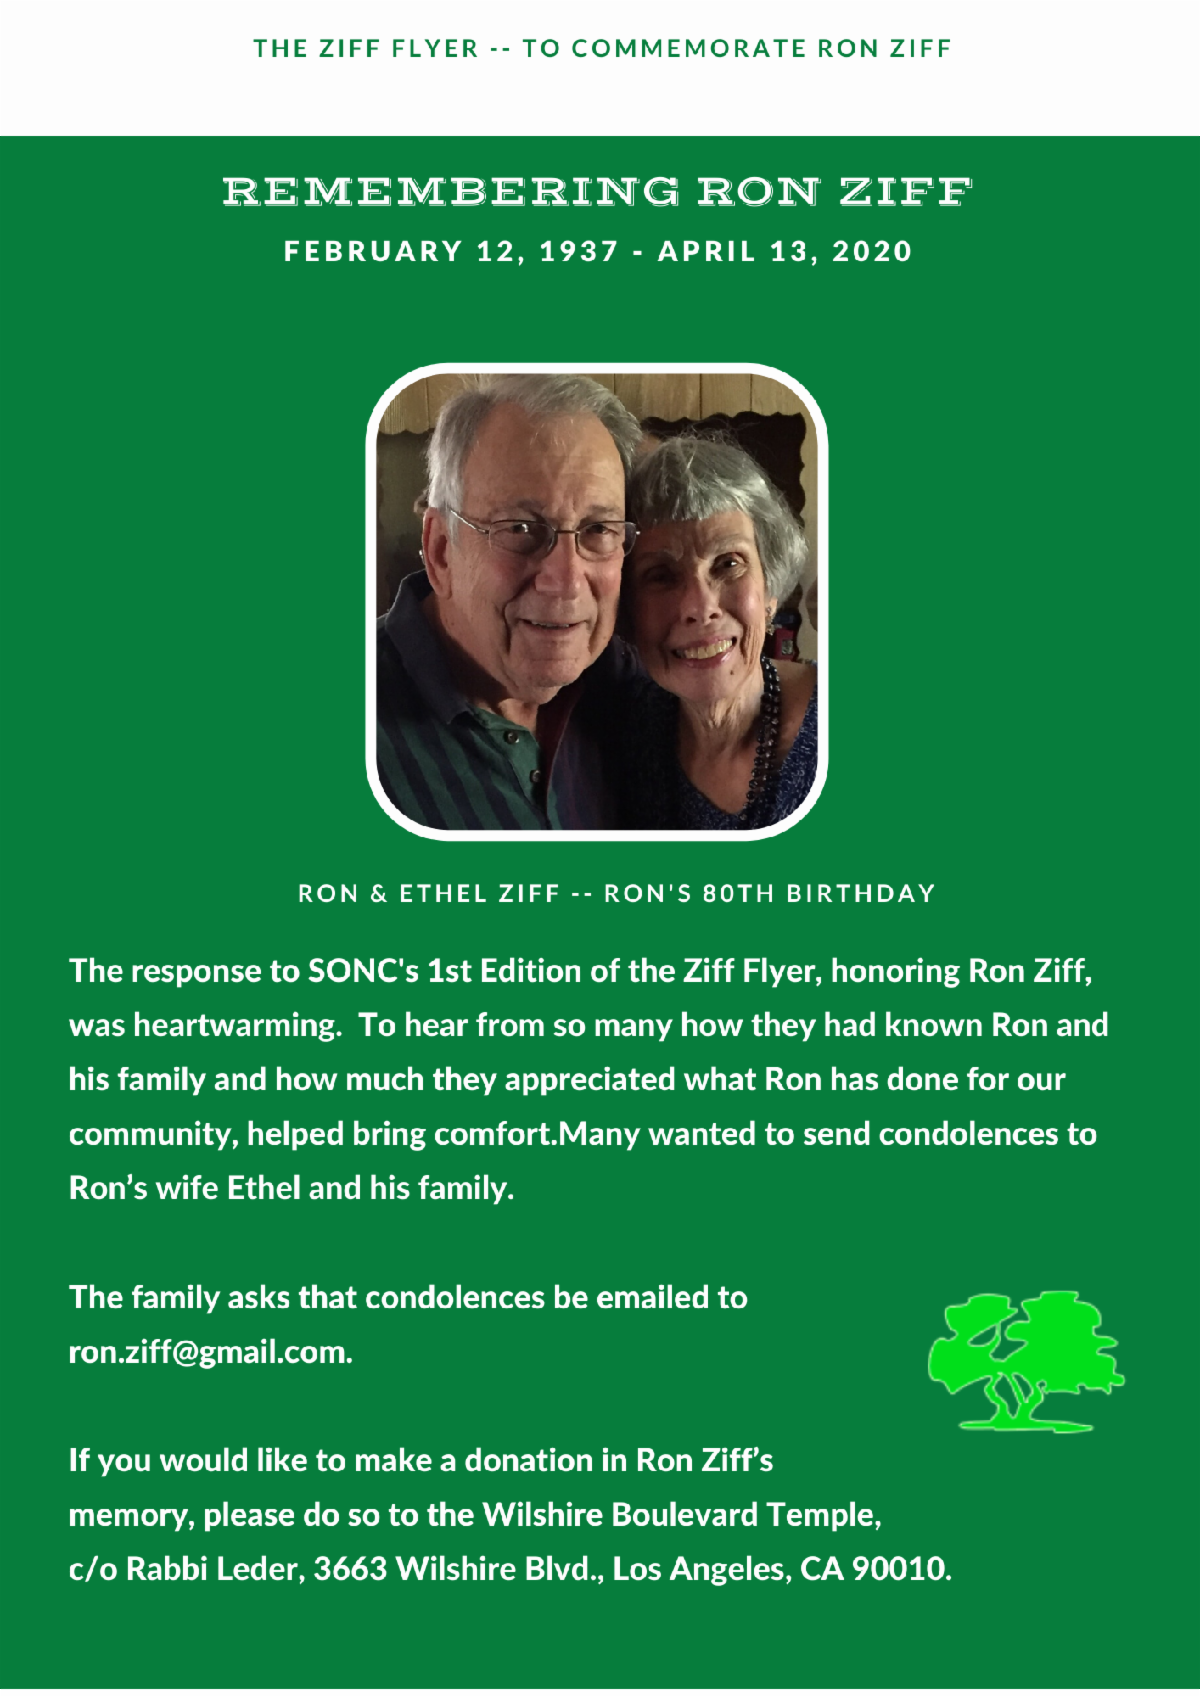 The response to SONC's 1st Edition of the Ziff Flyer honoring Ron Ziff was heartwarming. To hear from so many how they had known Ron and his family and how much they appreciated what Ron has done for our community helped bring comfort.